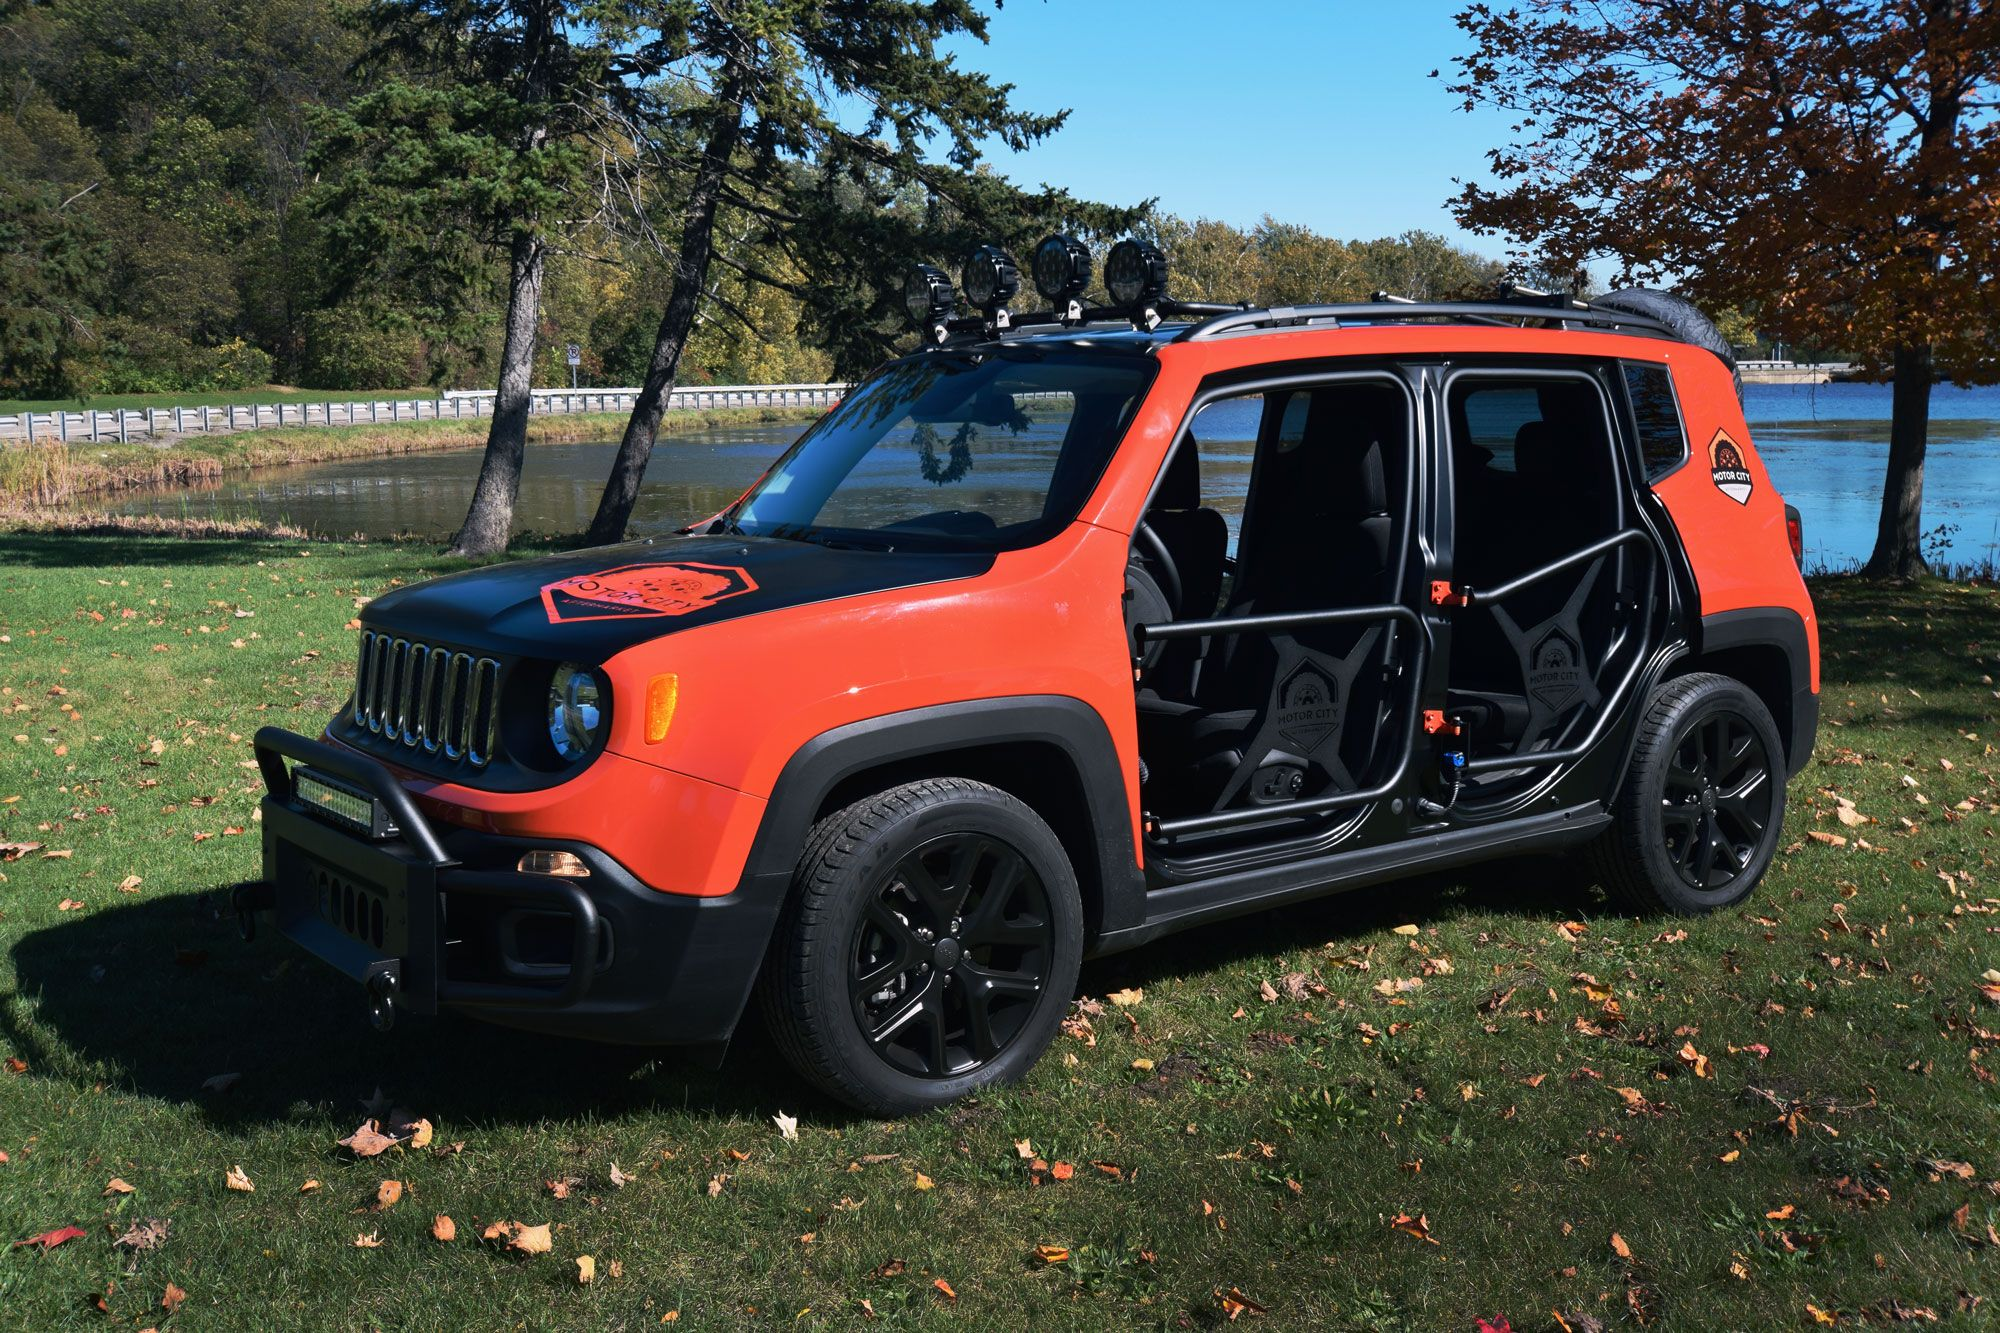 Sema Sneak Peek New Jeep Renegade Accessories Motor City Aftermarket Jeep Renegade Jeep Trailhawk Jeep Renegade Trailhawk